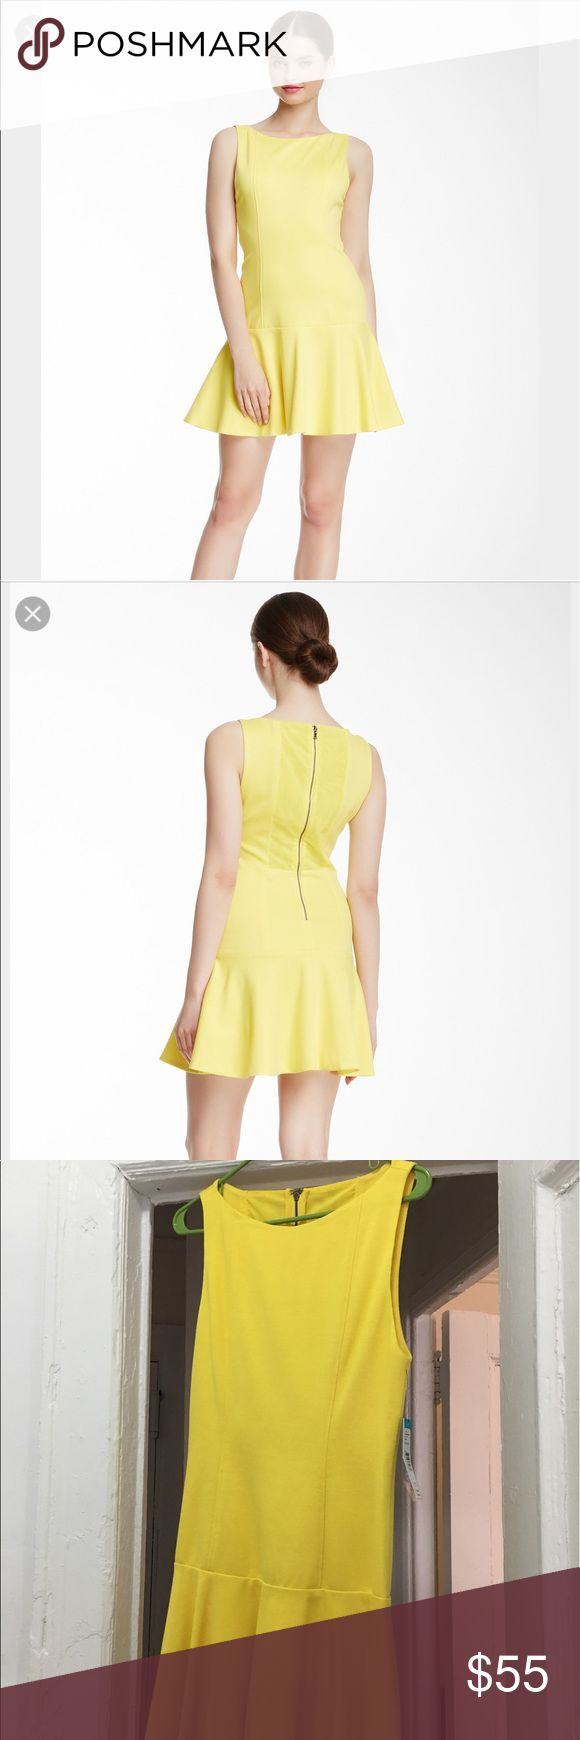 alice + Olivia Kaya drop waist dress size 10 NWT Yellow alice + olivia drop waist dress. Fun dress for a picnic paired with sandals or with heels for a night out. Alice & Olivia Dresses Mini